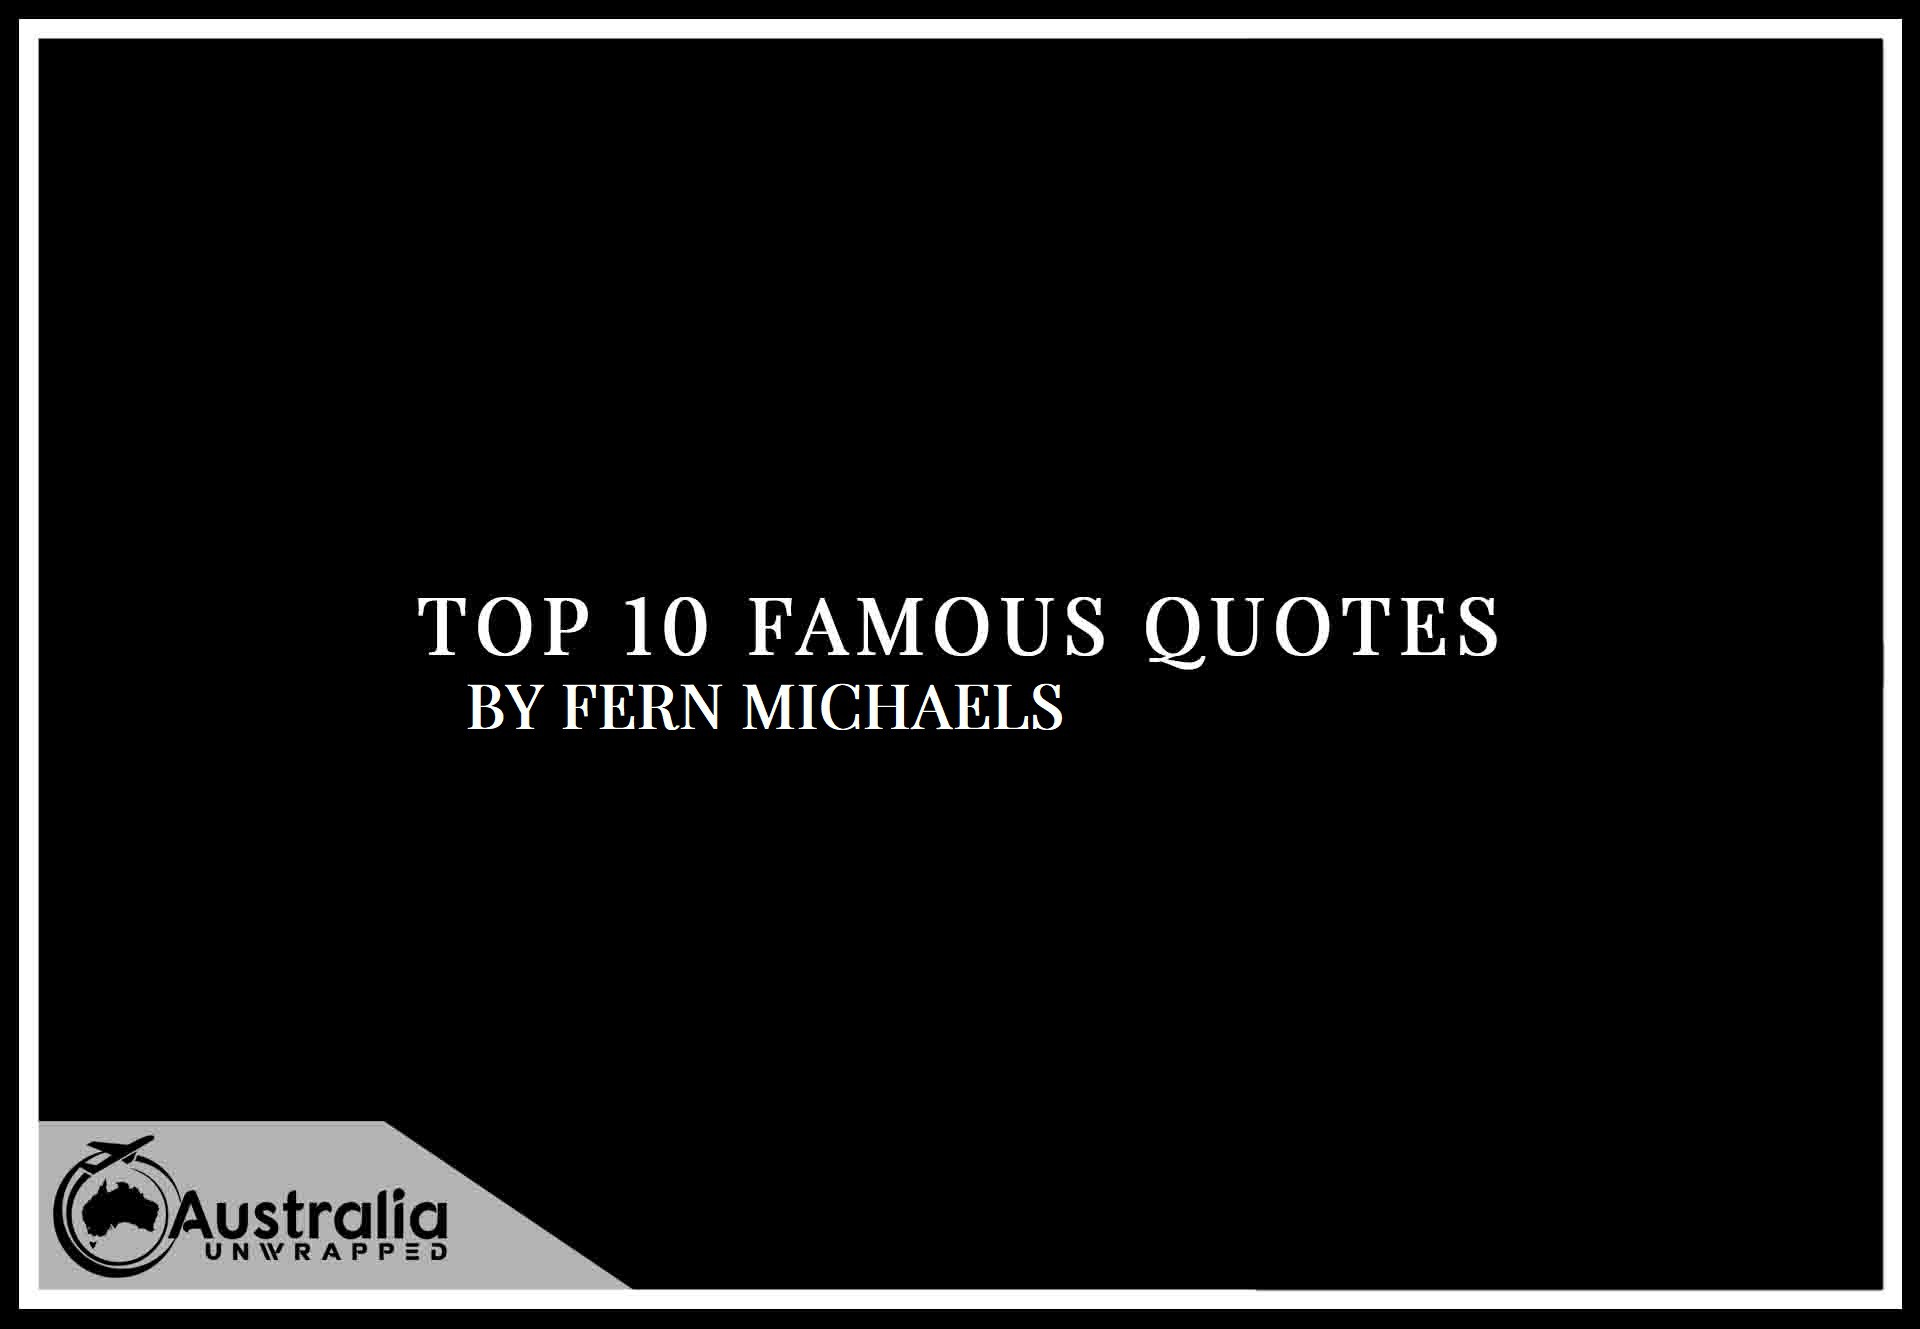 Top 10 Famous Quotes by Author Fern Michaels